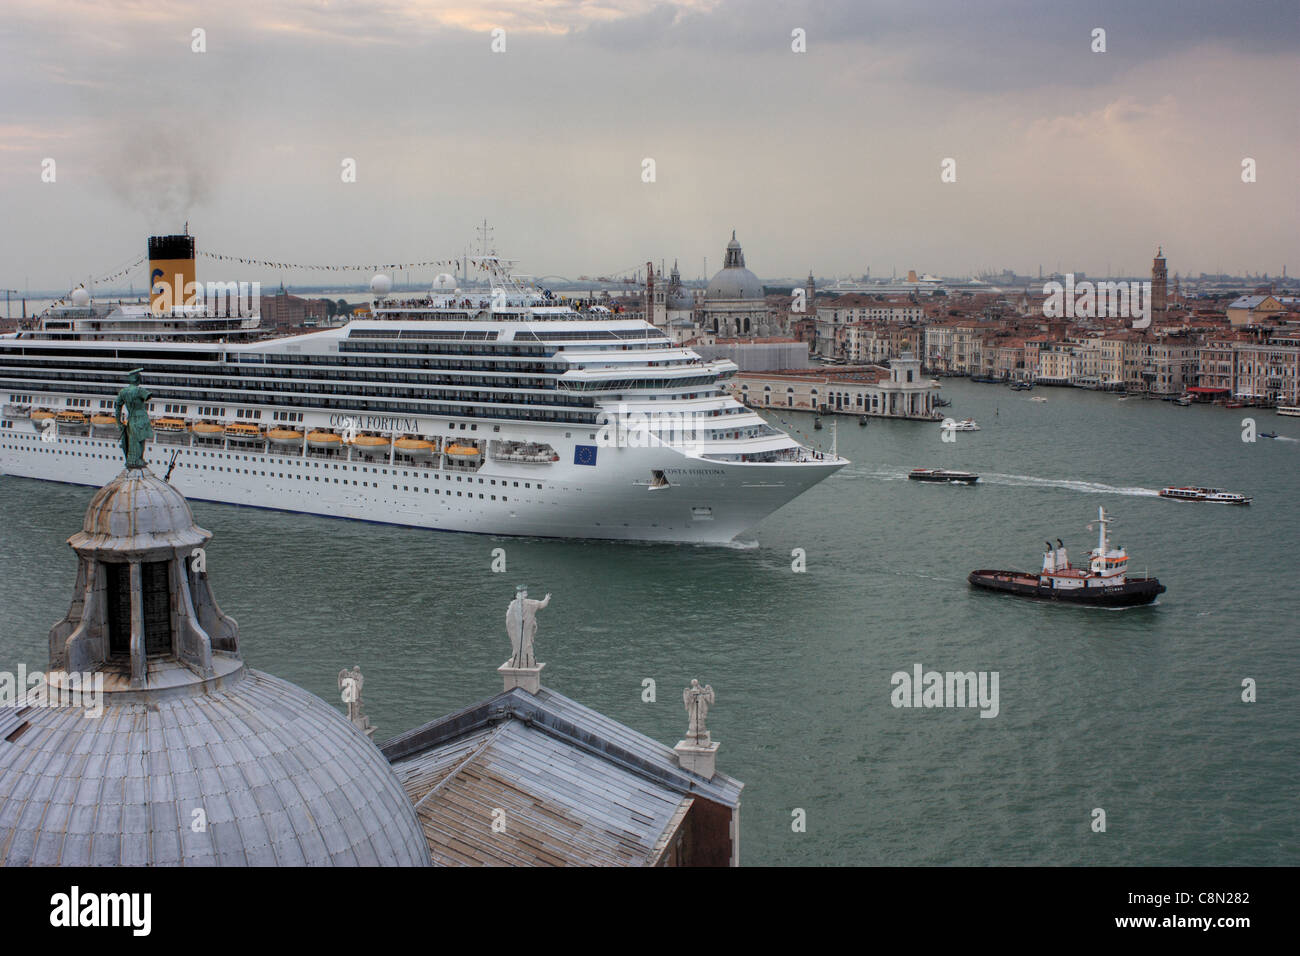 Cruise ship Costa Fortuna in Venice - Stock Image